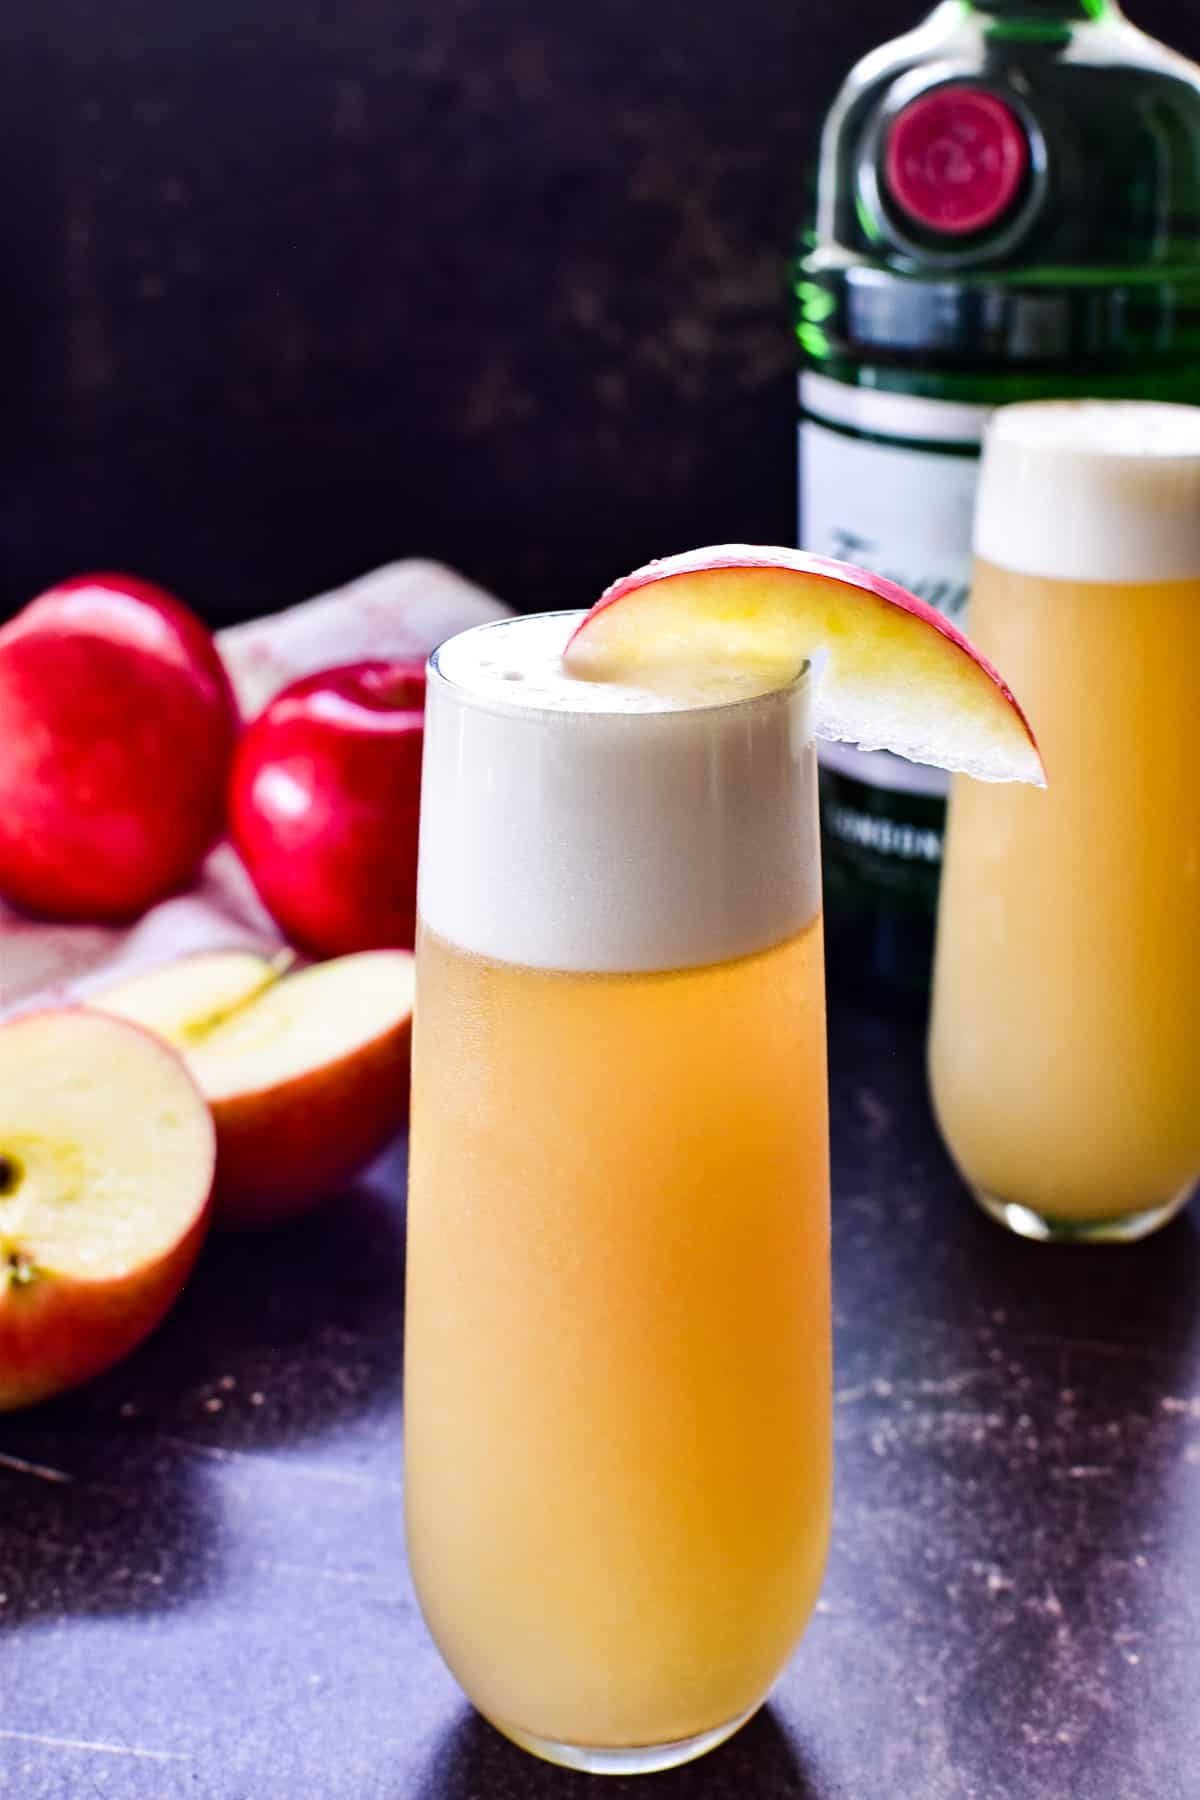 Apple Gin Fizz in a glass with a bottle of Tanqueray and fresh red apples